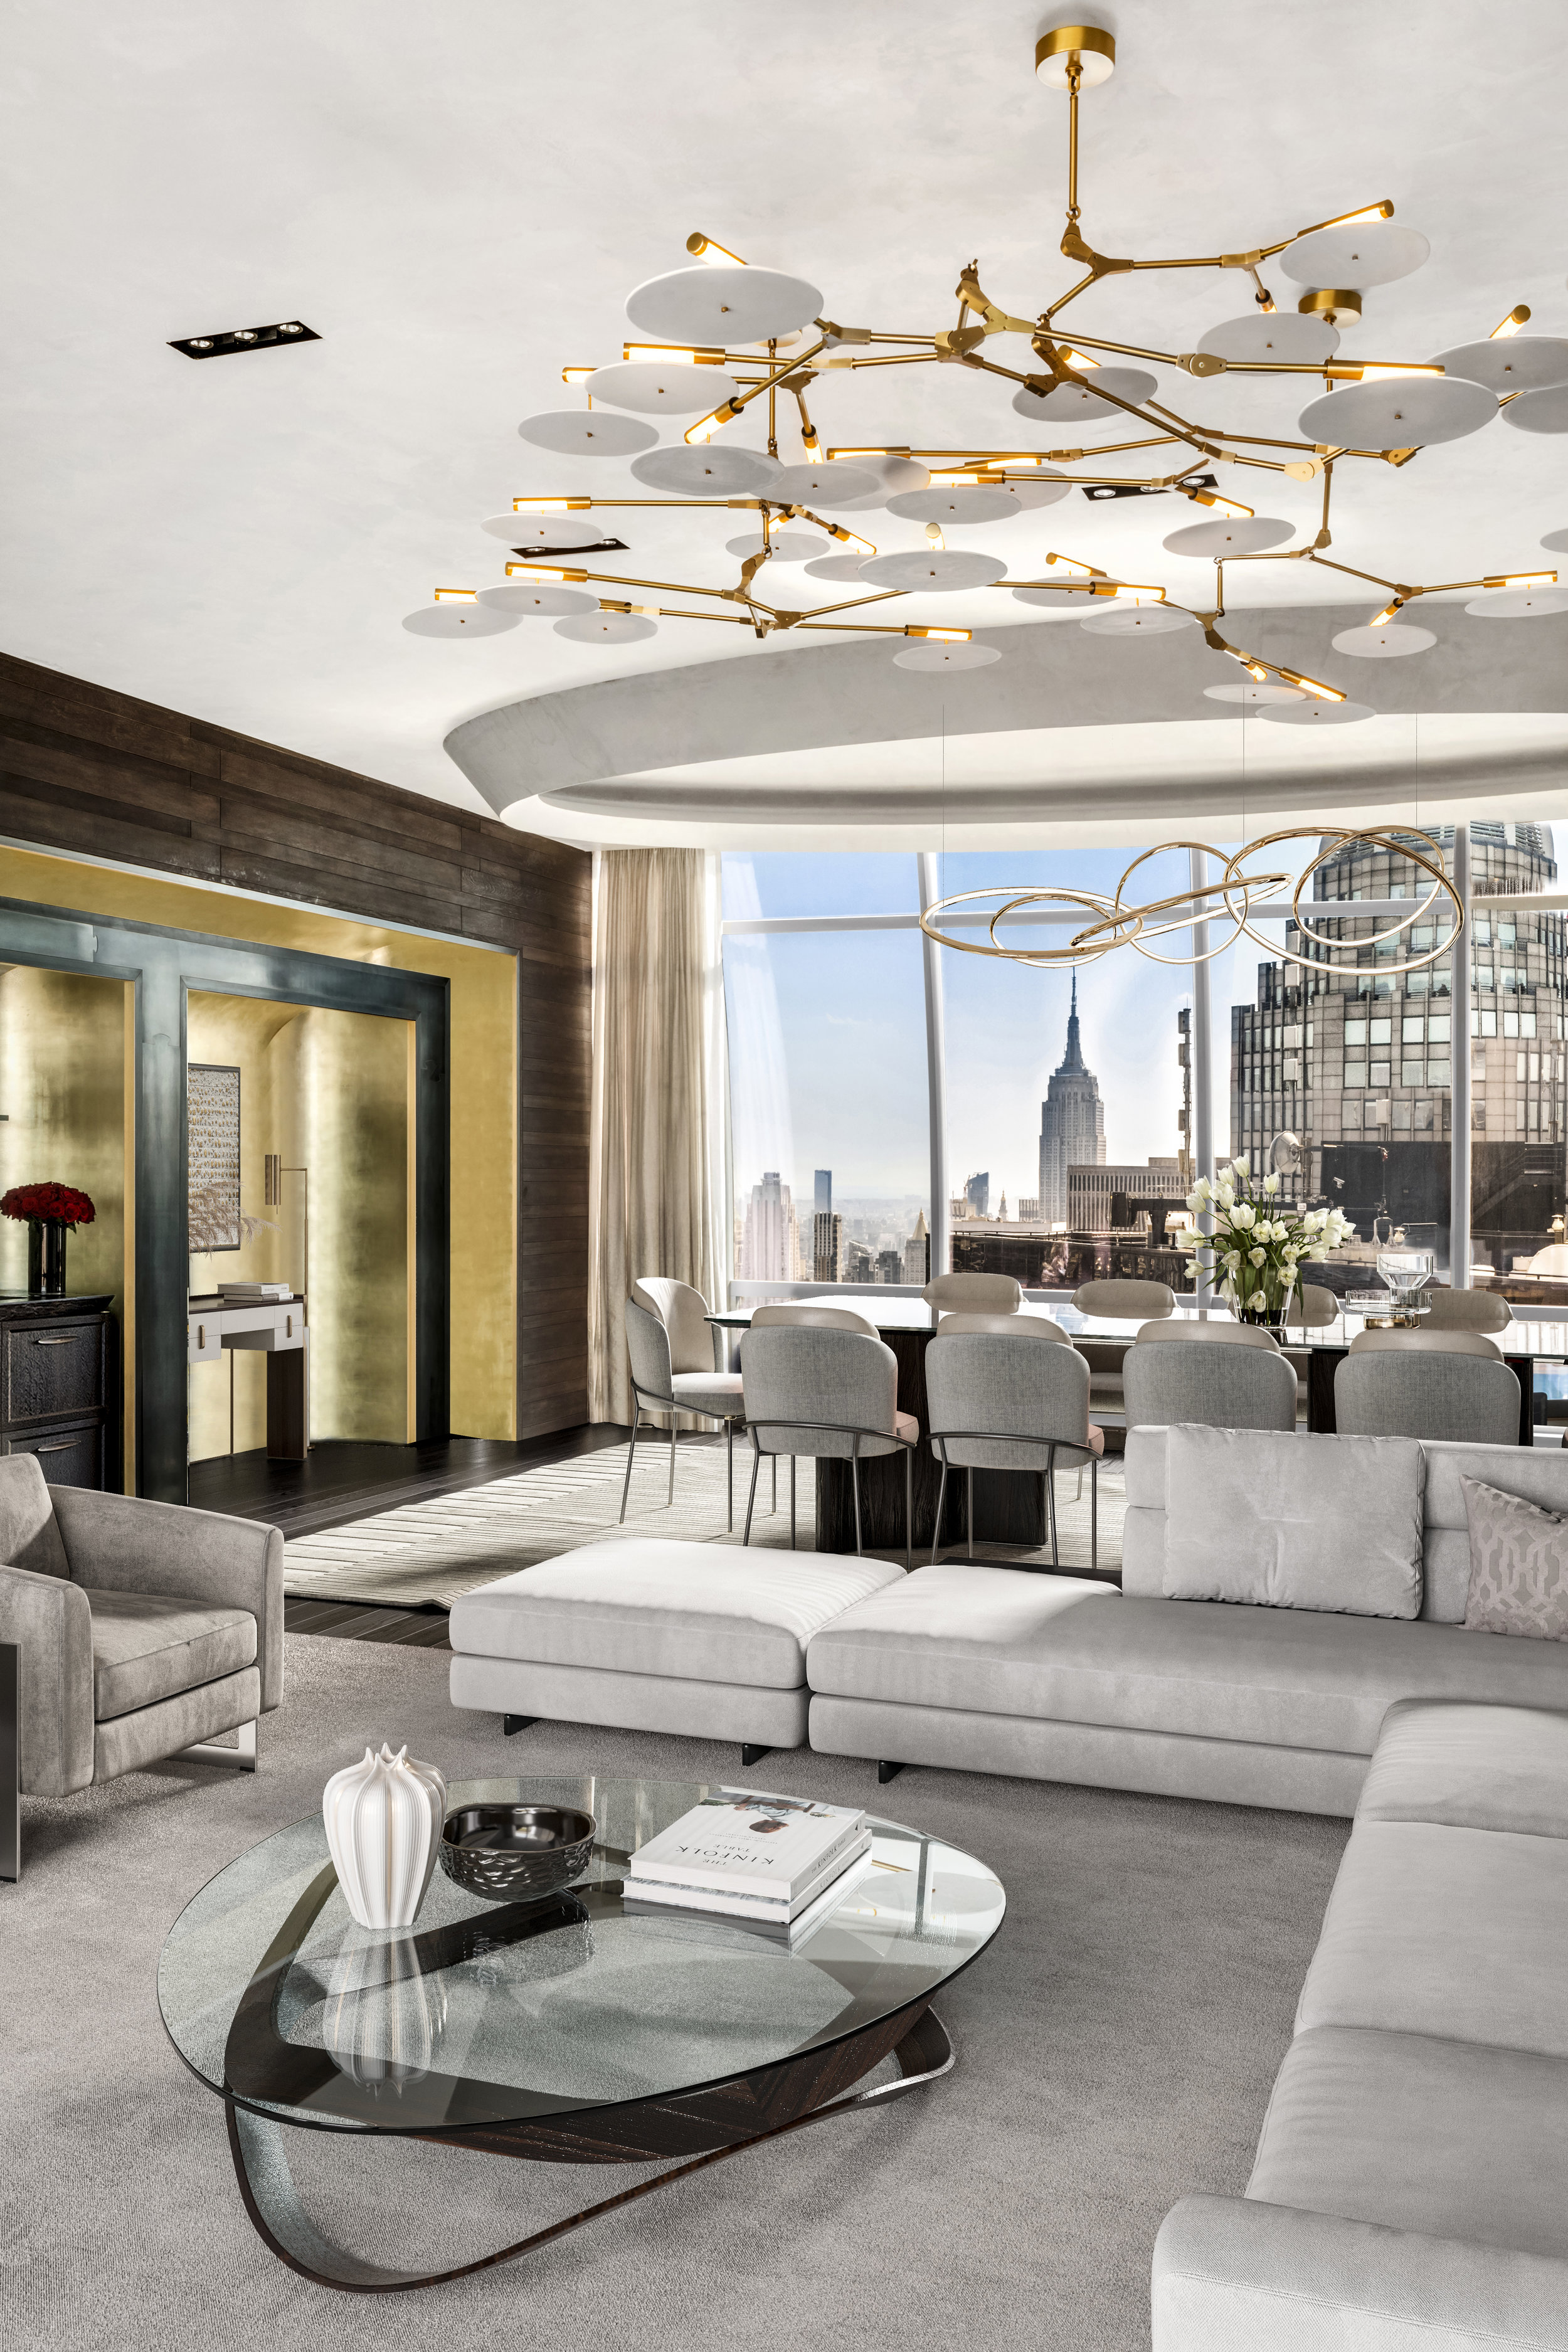 One57157West57thSt67B-CentralParkSouthNewYork_Anthony_Barillo_DouglasElliman_Photography_76924936_high_res.jpg